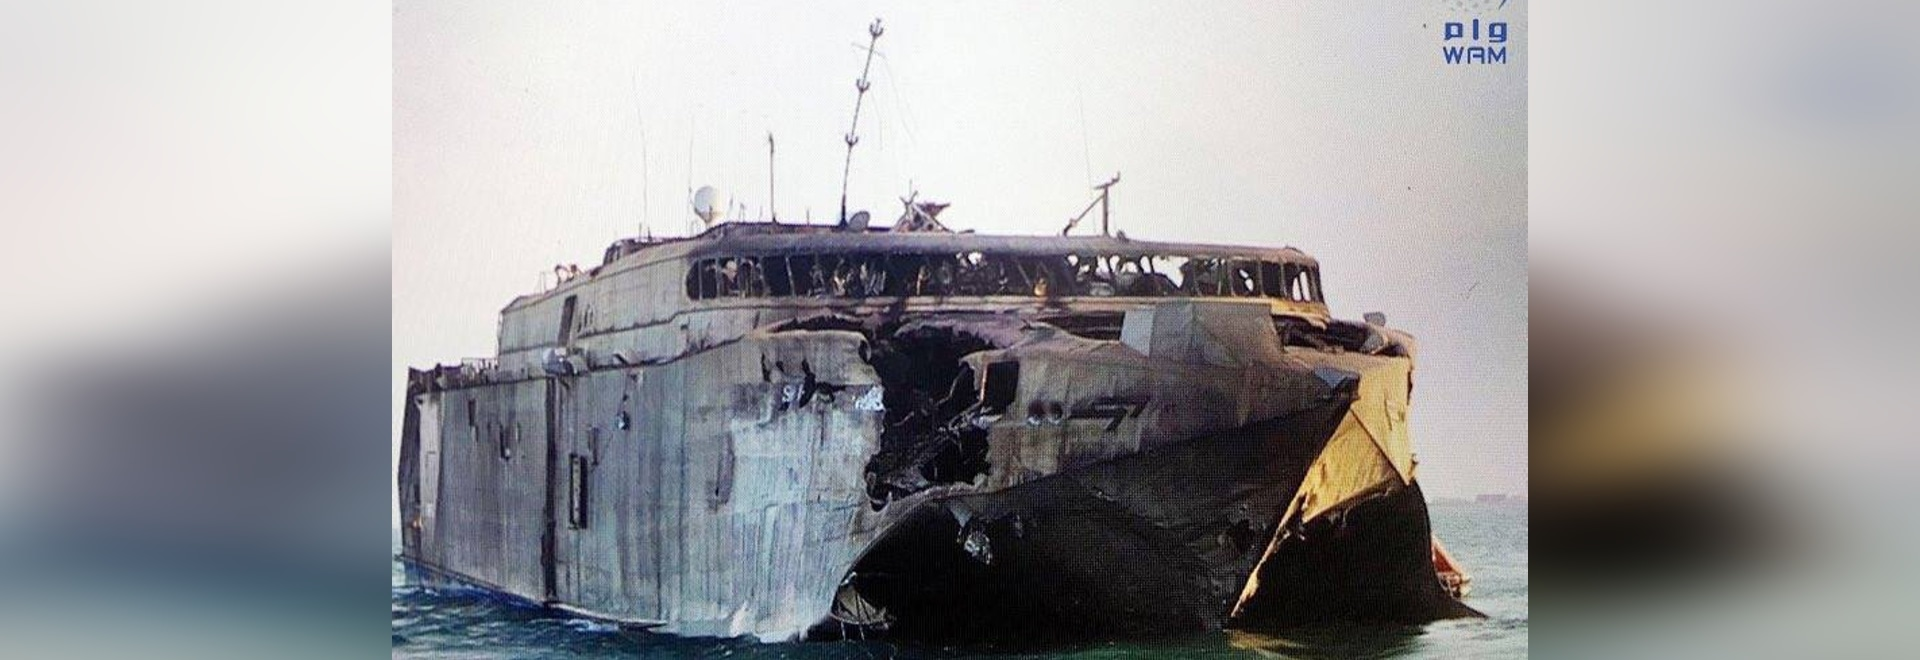 UAE logistics vessel HSV Swift was severely damaged in attack by Houthi rebels